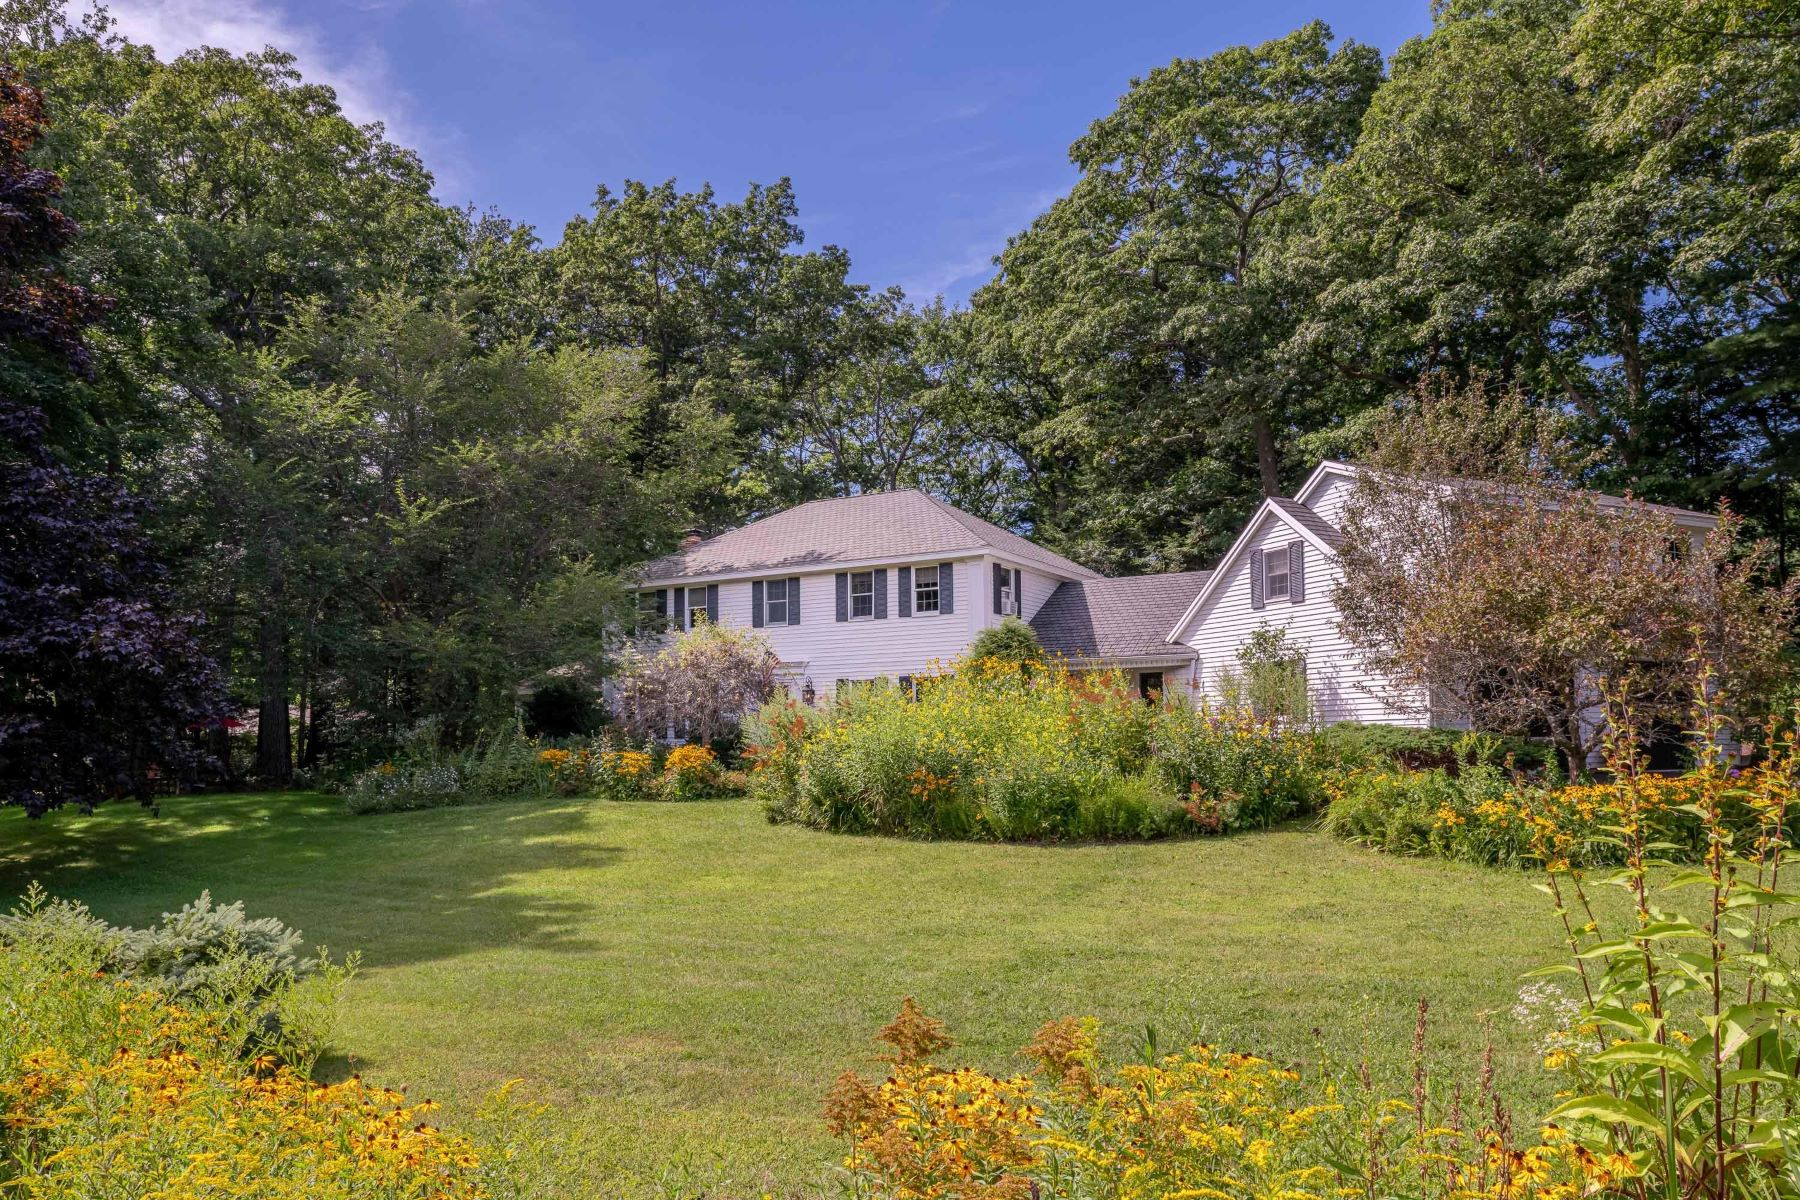 Single Family Homes for Sale at 15 Cranbrook Drive Cape Elizabeth, Maine 04107 United States